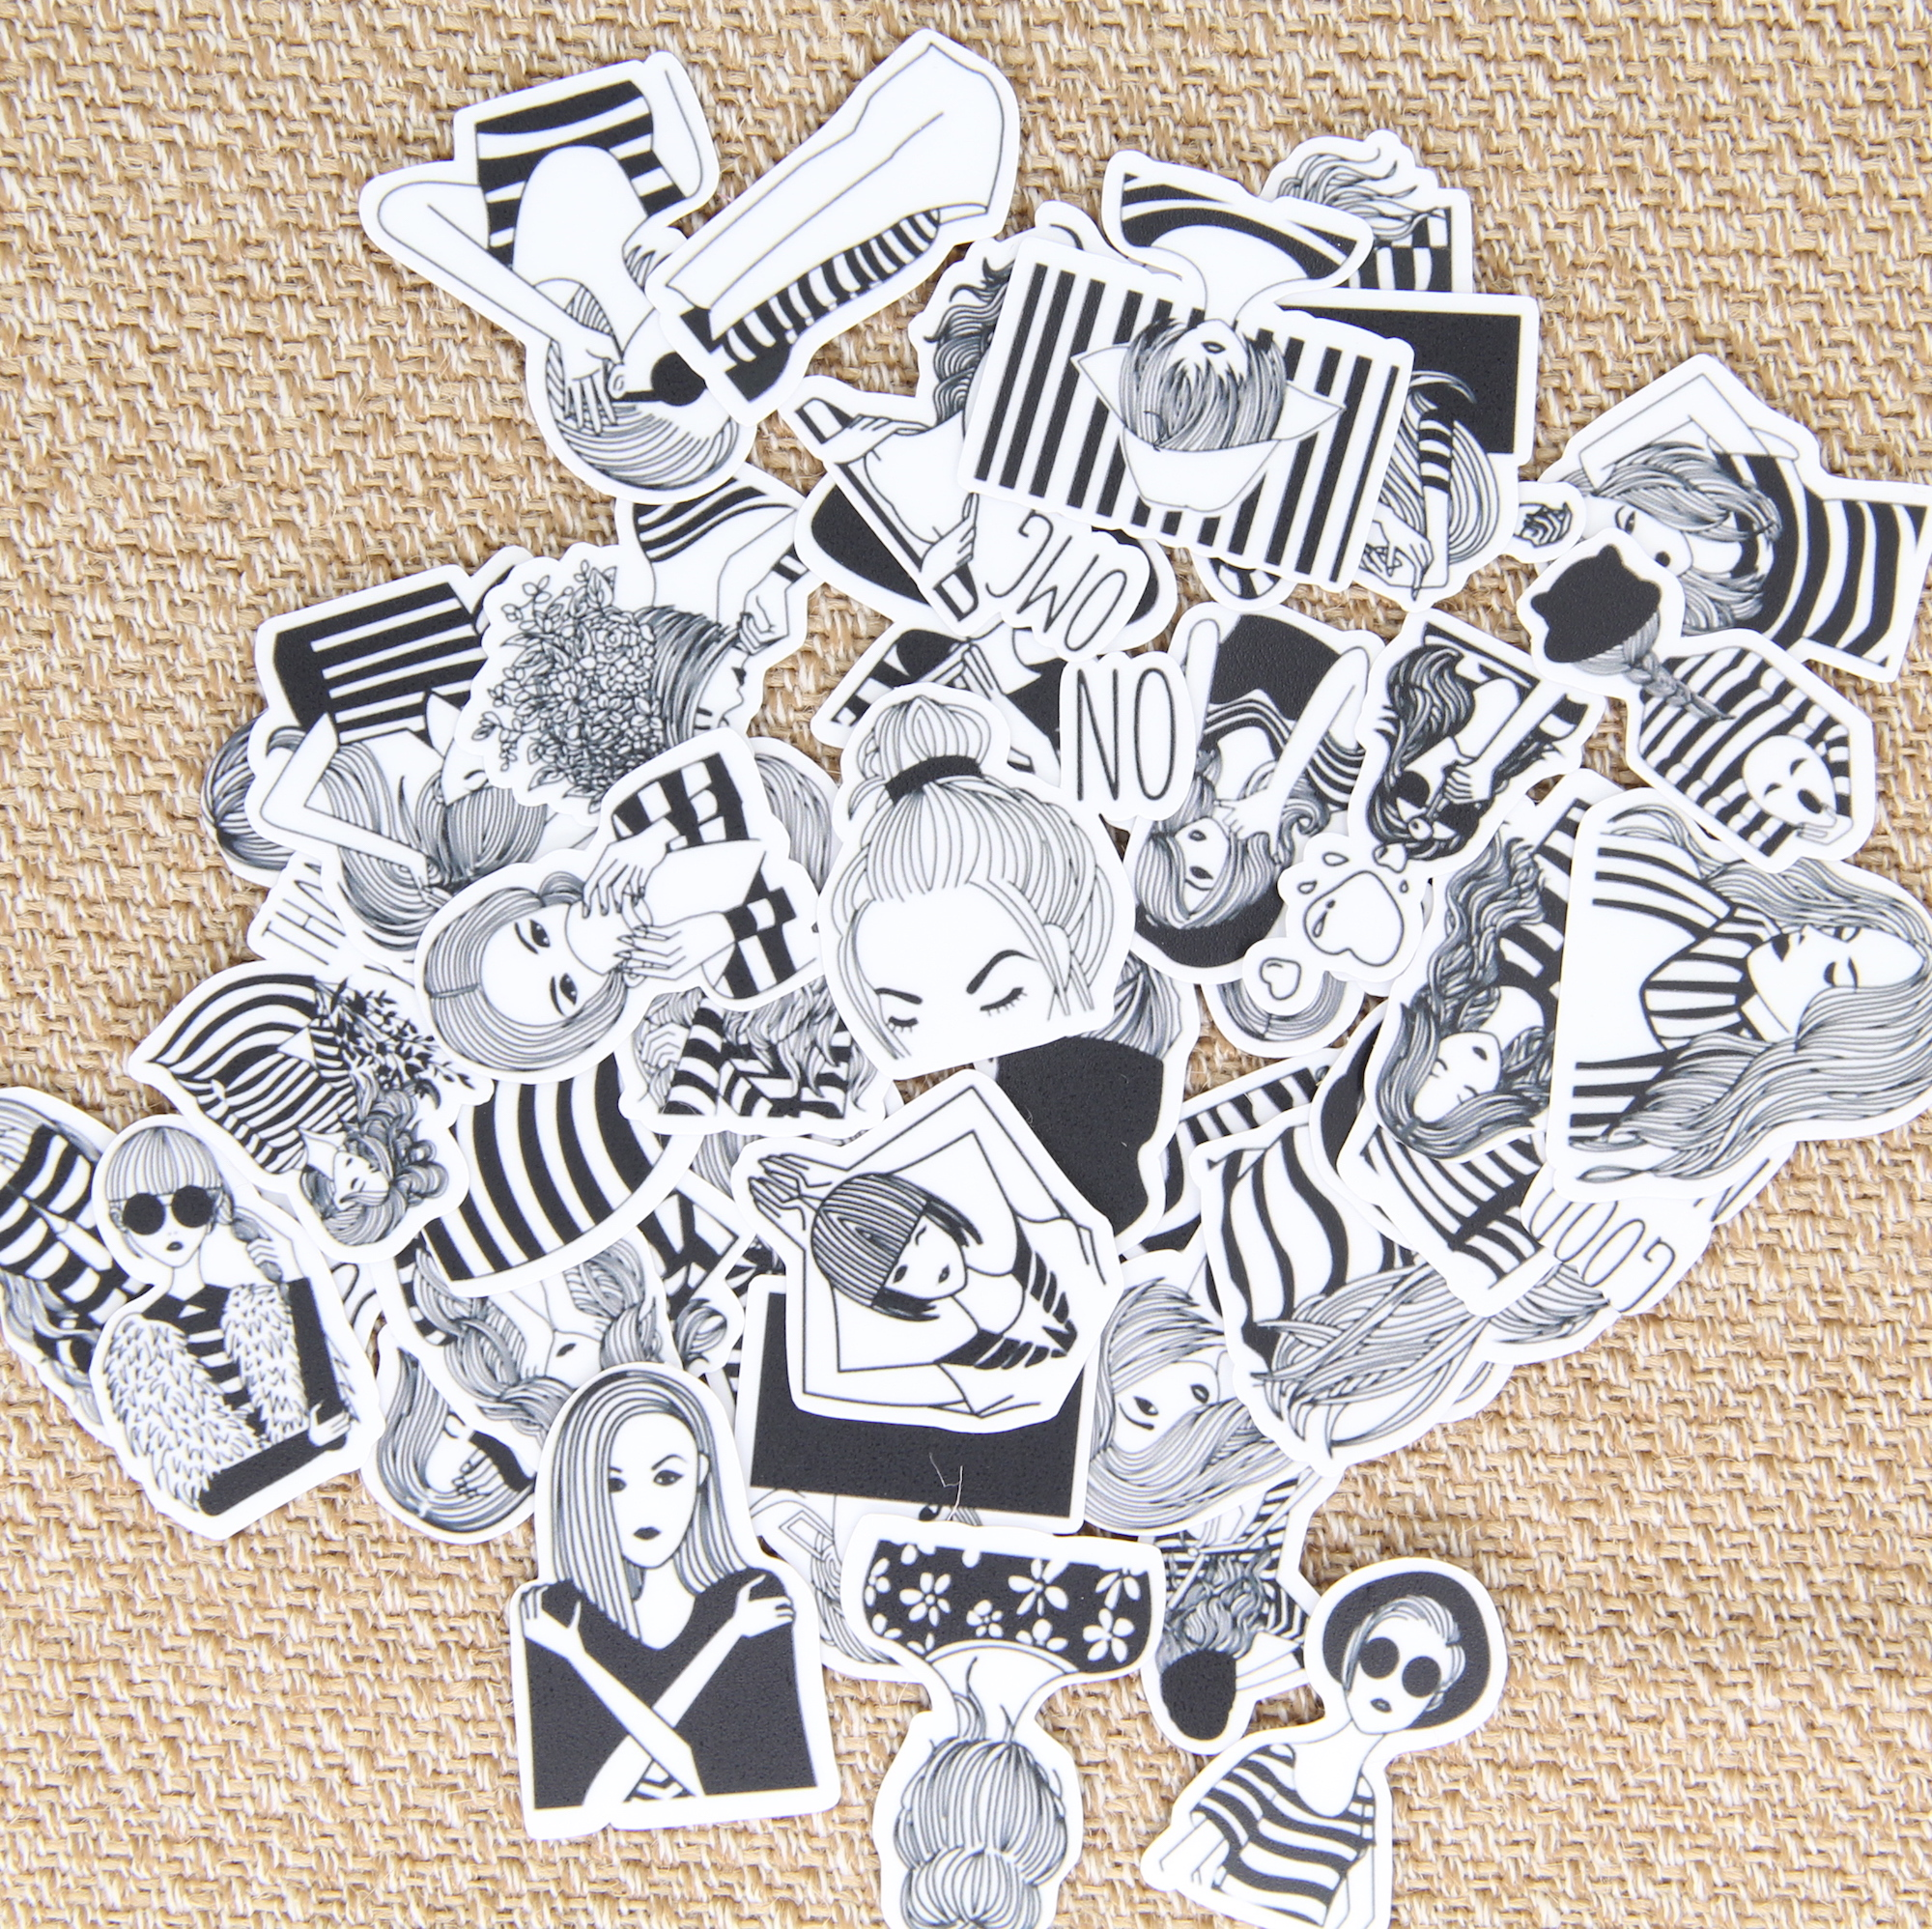 40pcs Self-made Black White Cool Women Lady Scrapbooking Stickers Decorative Sticker DIY Craft Photo Albums Decals Diary Deco